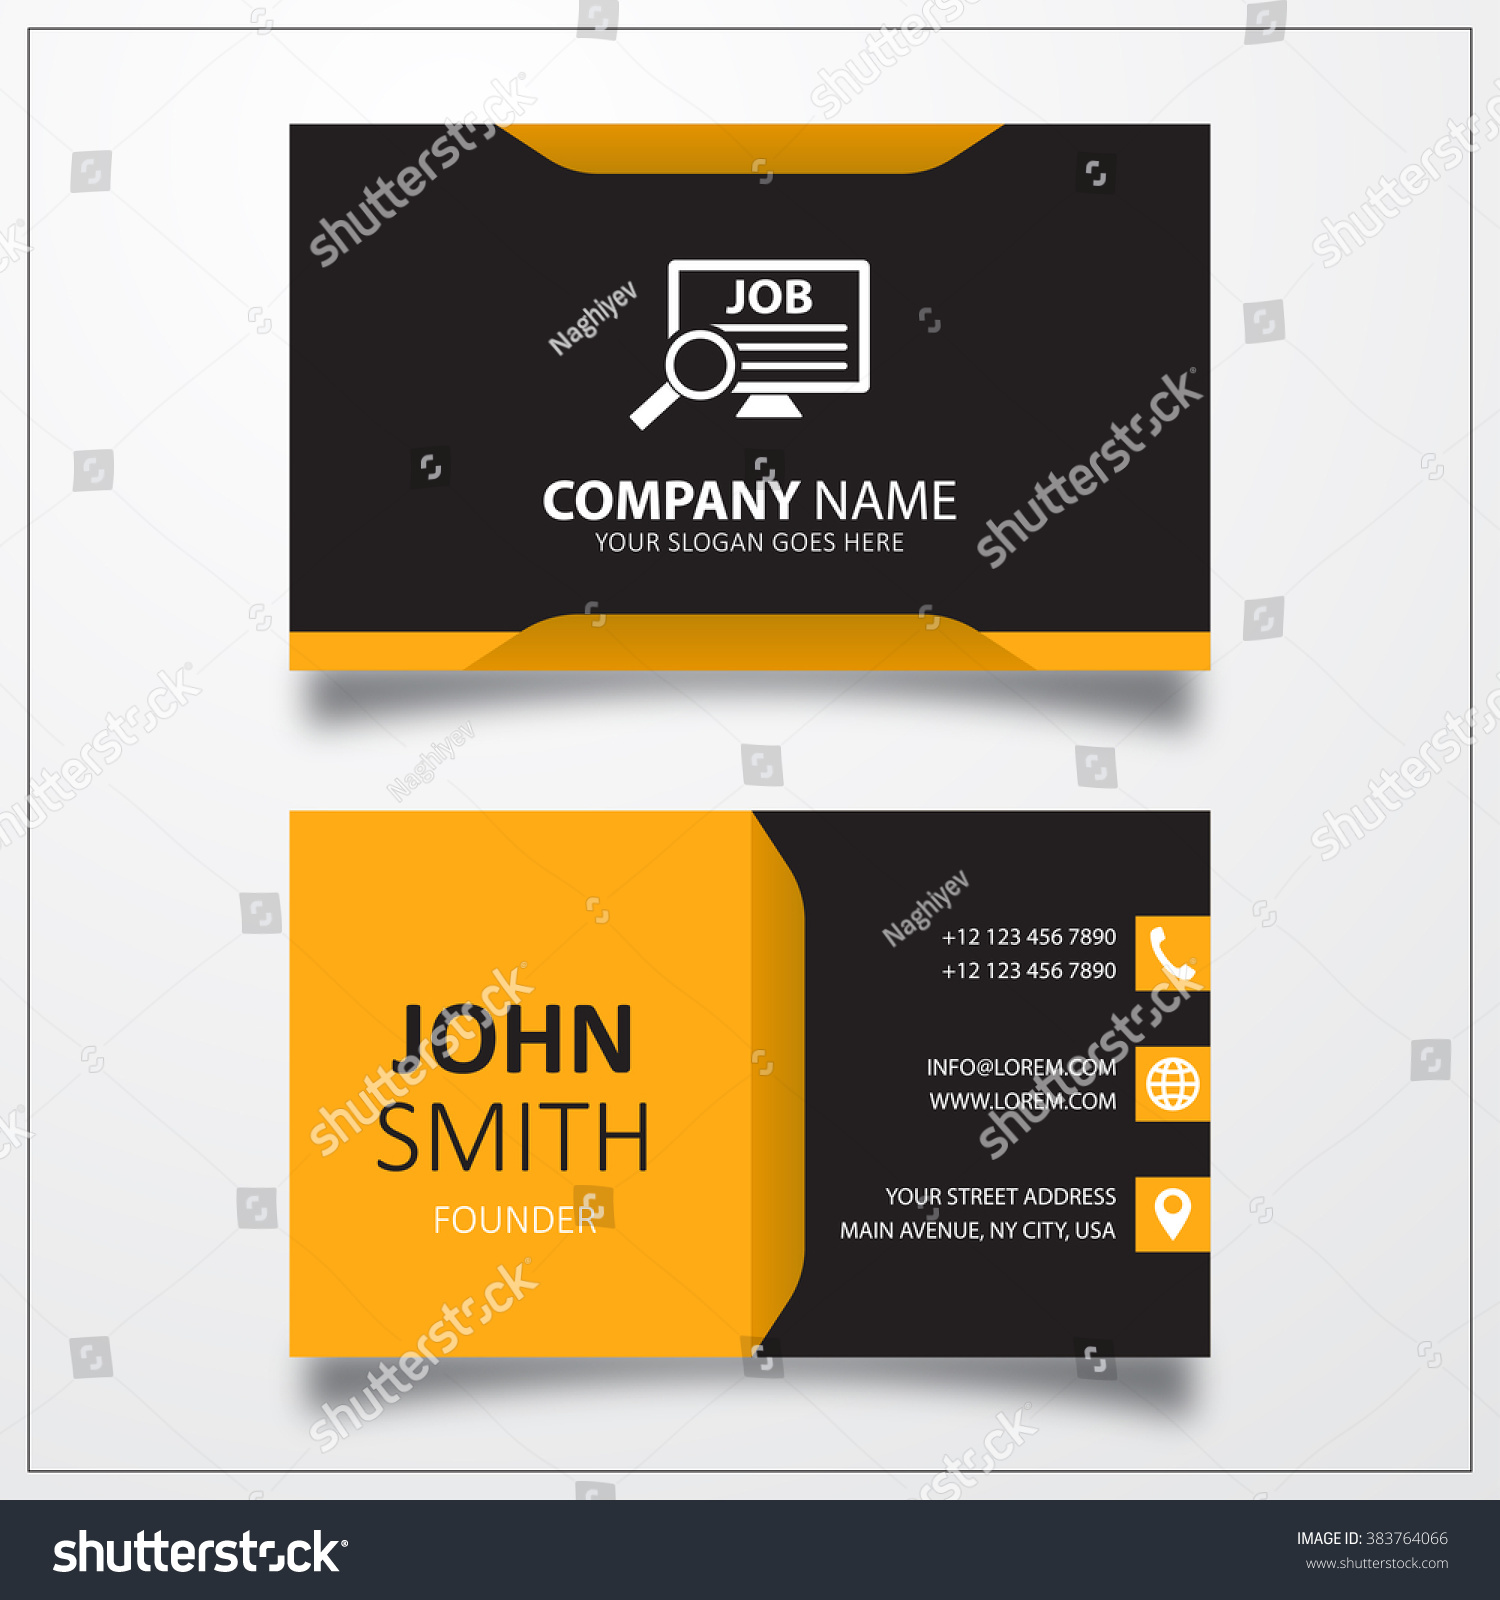 job search icon business card template stock photo  job search icon business card template